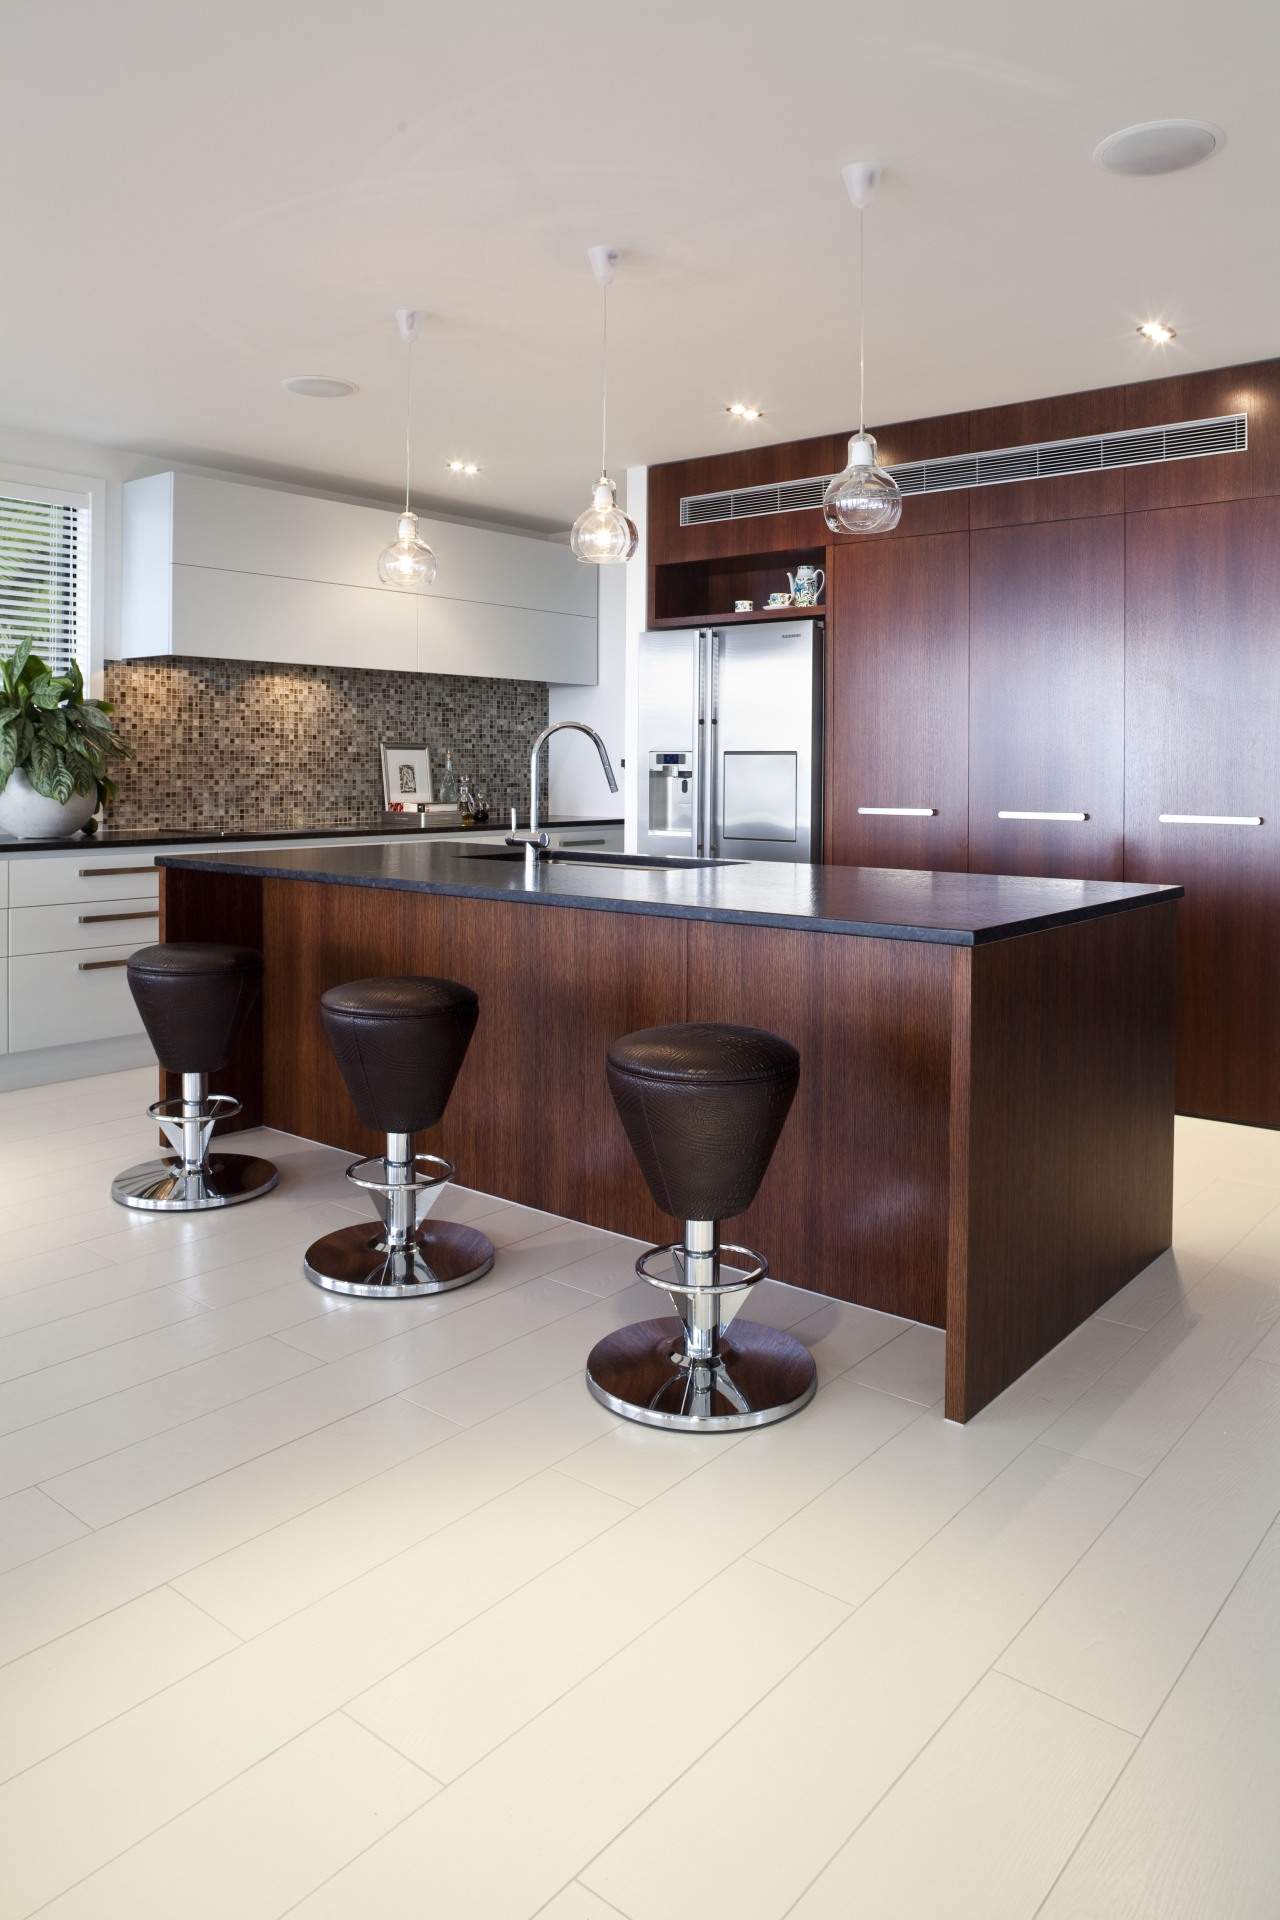 Large functional space/ Remodelled kitchen. Work triangle. Soft-closing countertop, floor, flooring, furniture, interior design, kitchen, product design, table, white